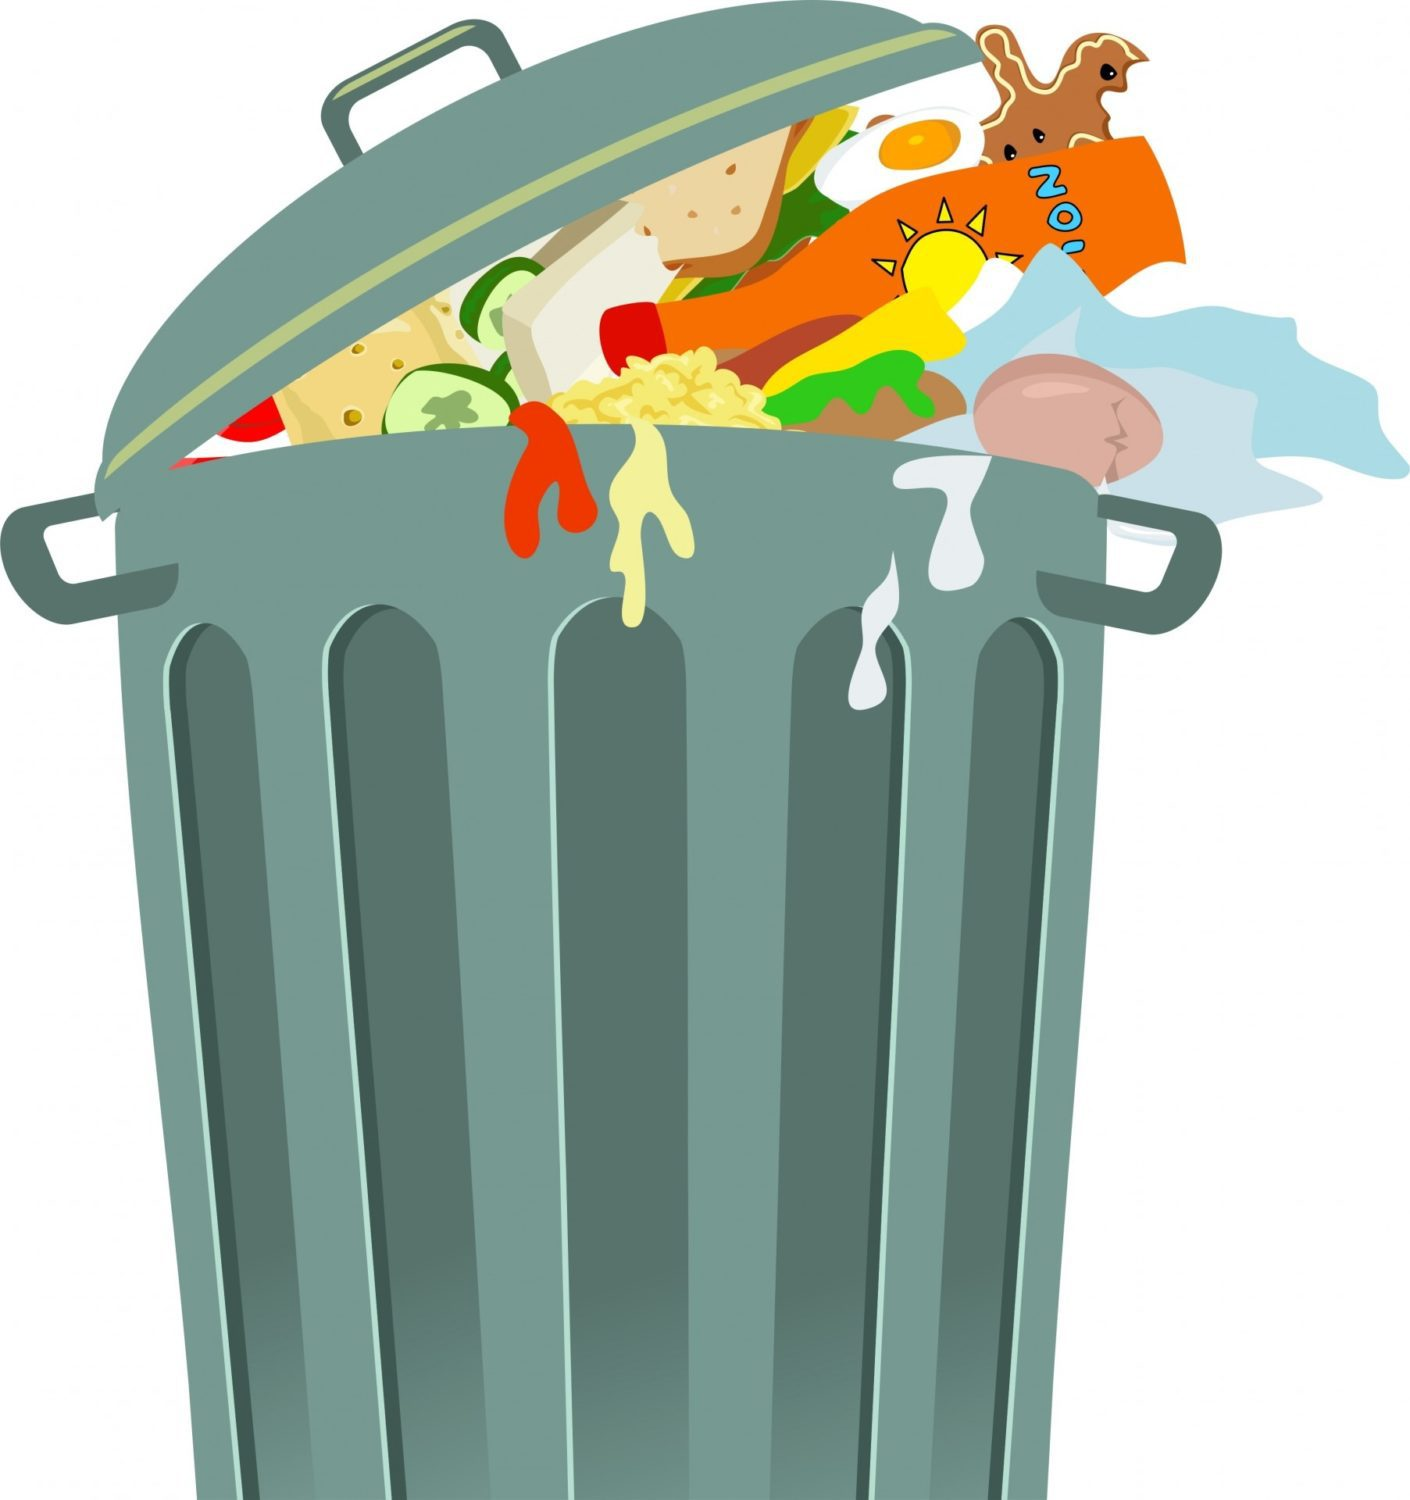 trash-can-clip-art-free-stock-photo-public-domain-pictures-within-garbage- can-clipart